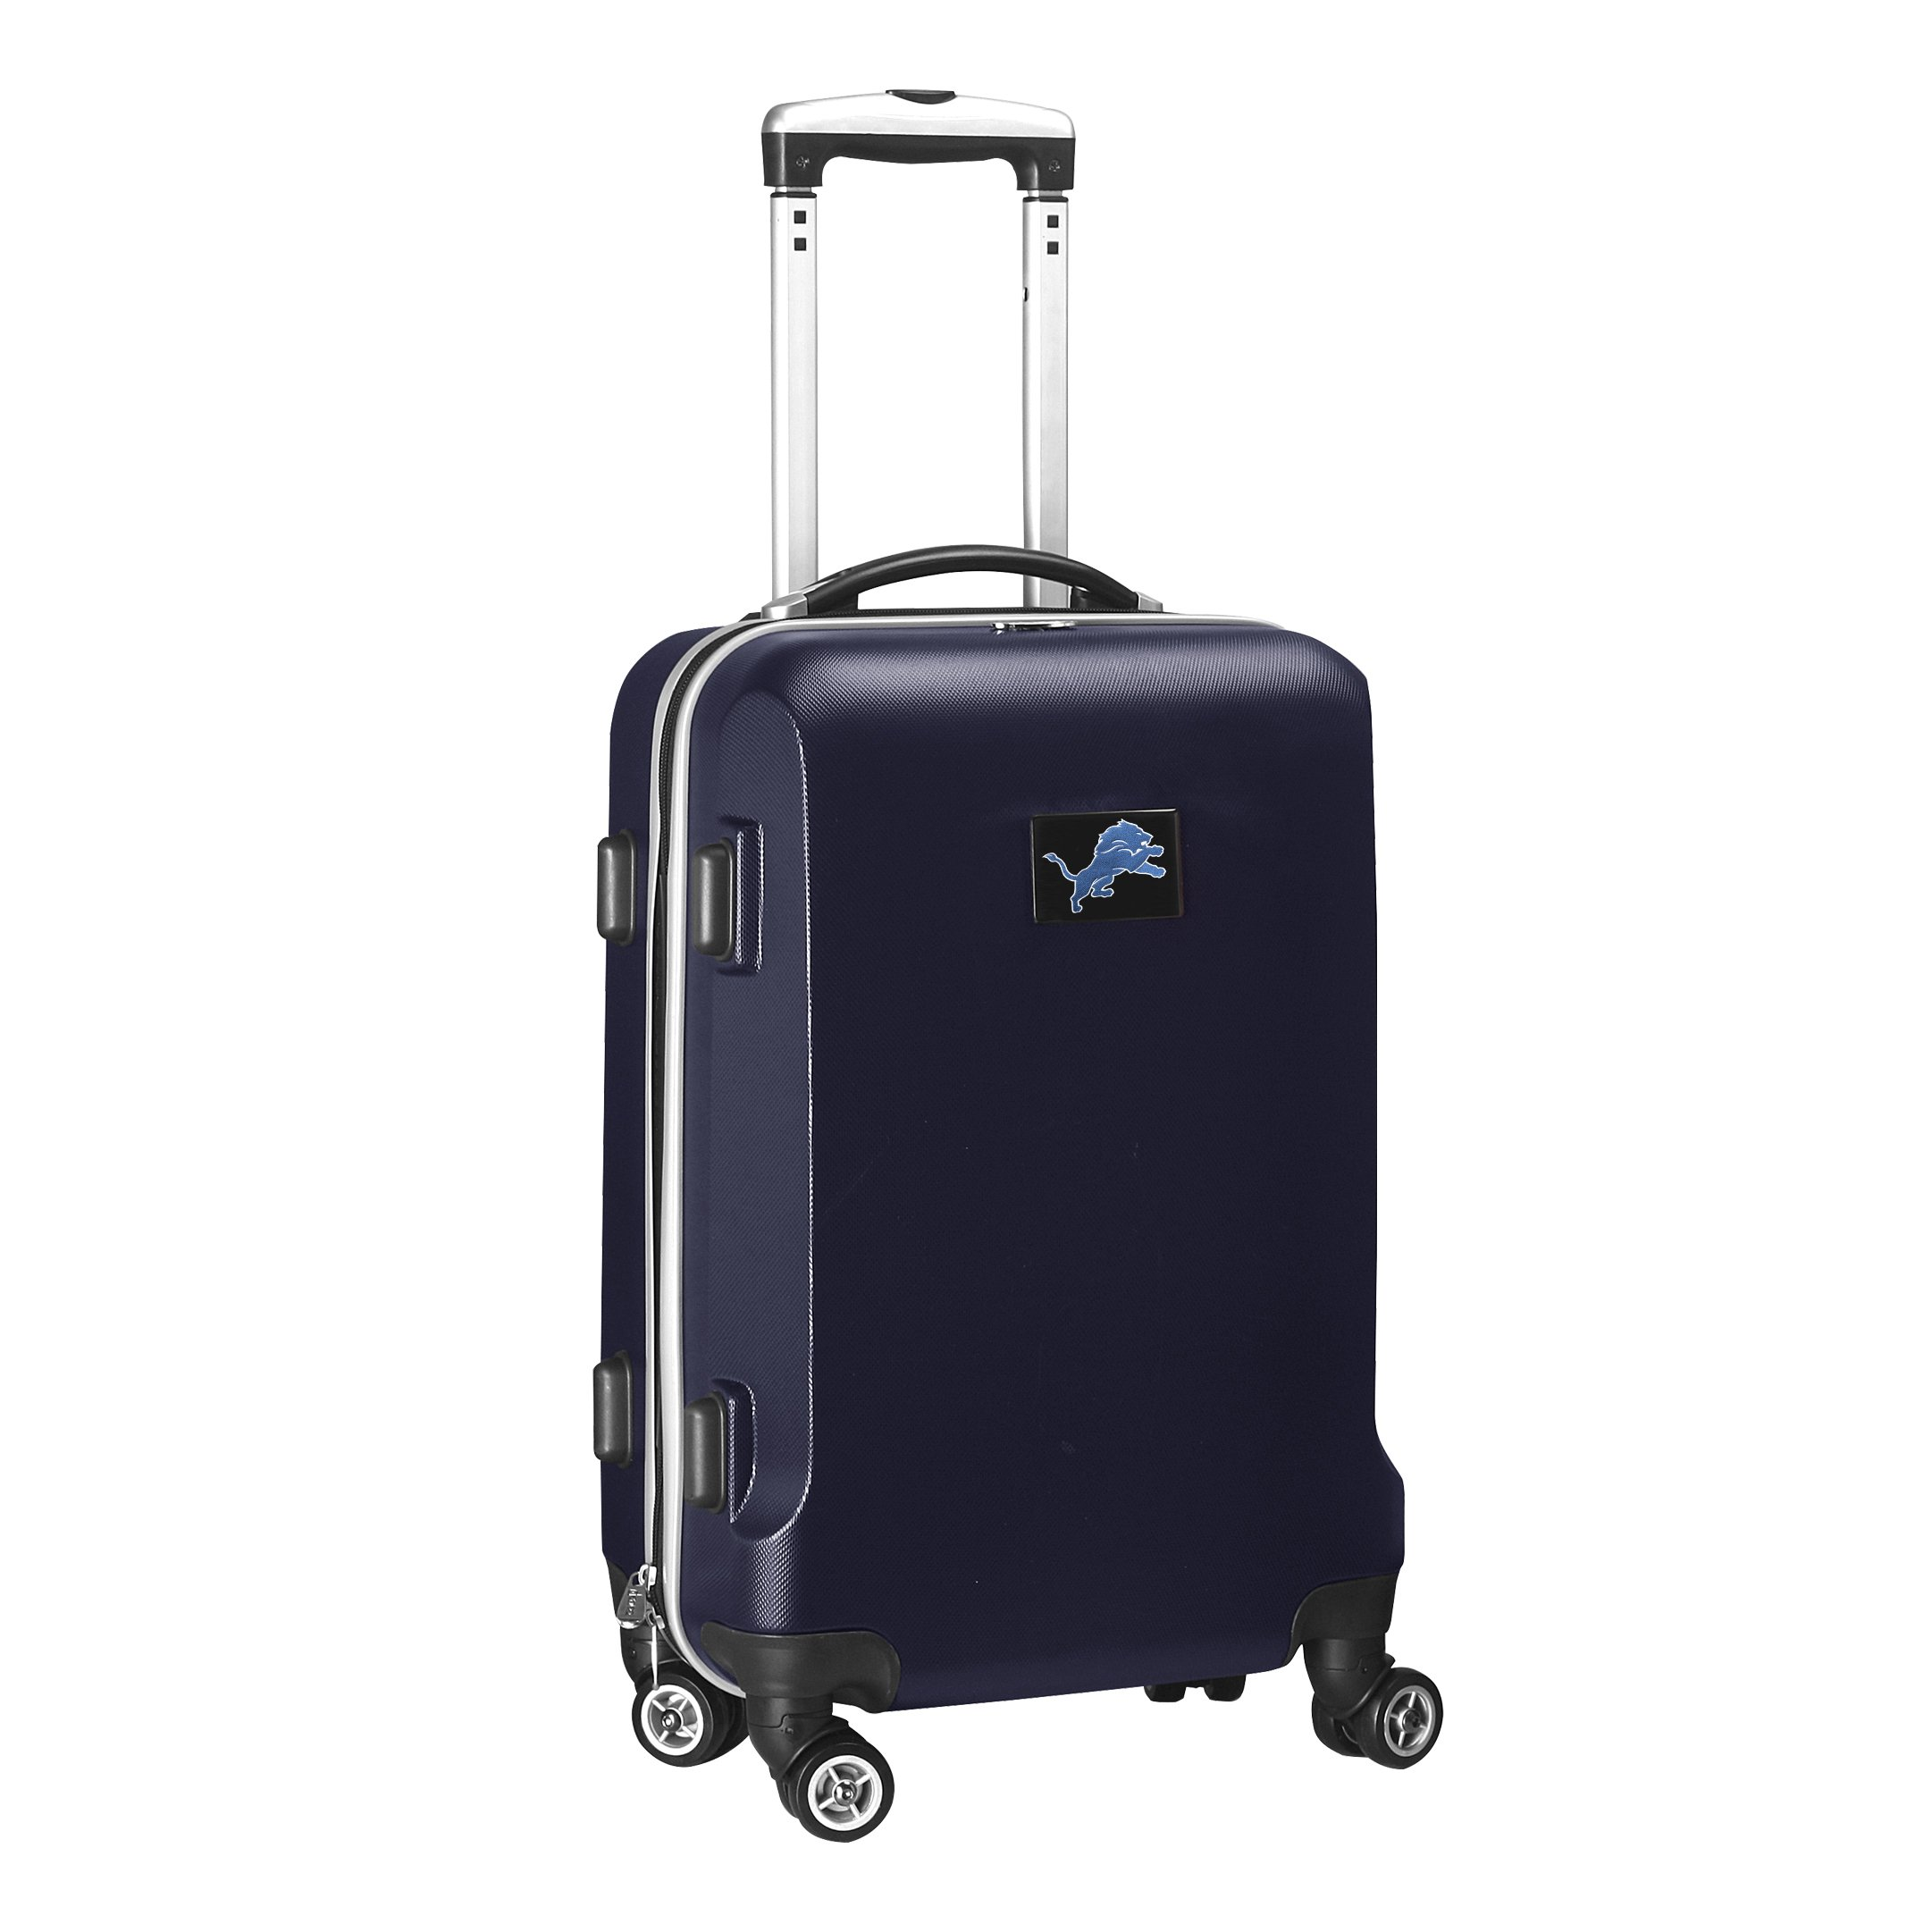 NFL Detroit Lions Carry-On Hardcase Luggage Spinner, Navy by Denco (Image #2)